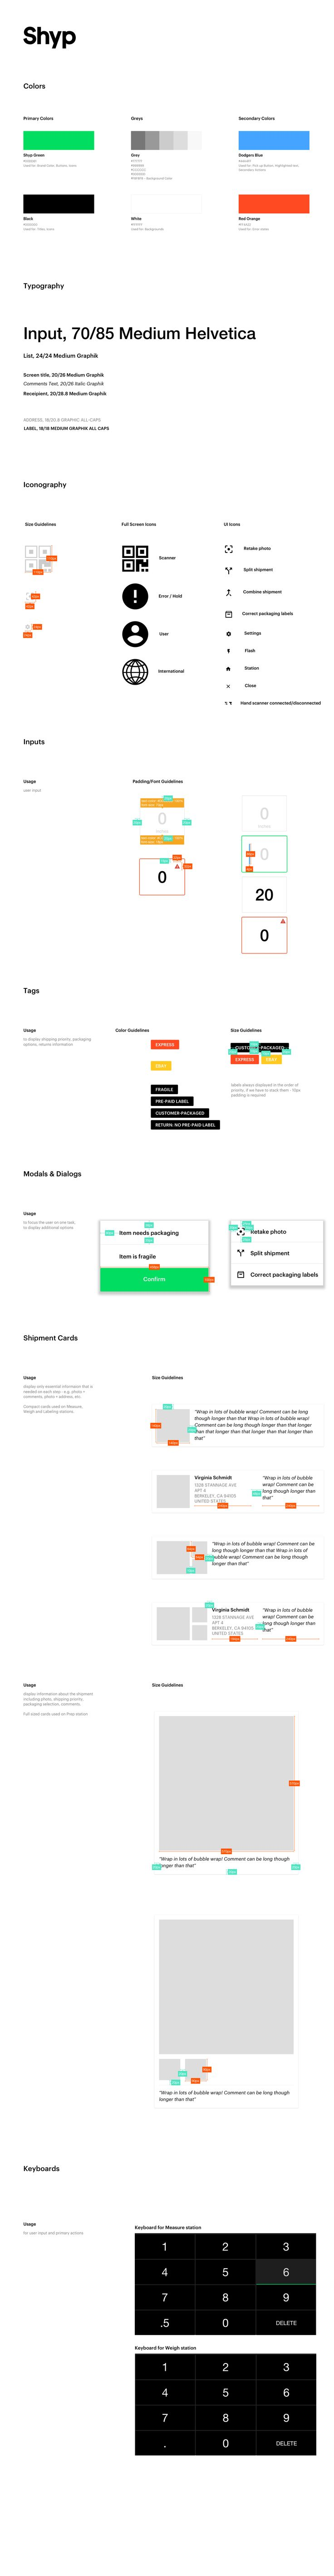 Shyp Anchor app Style Guide – Style guide by Julia